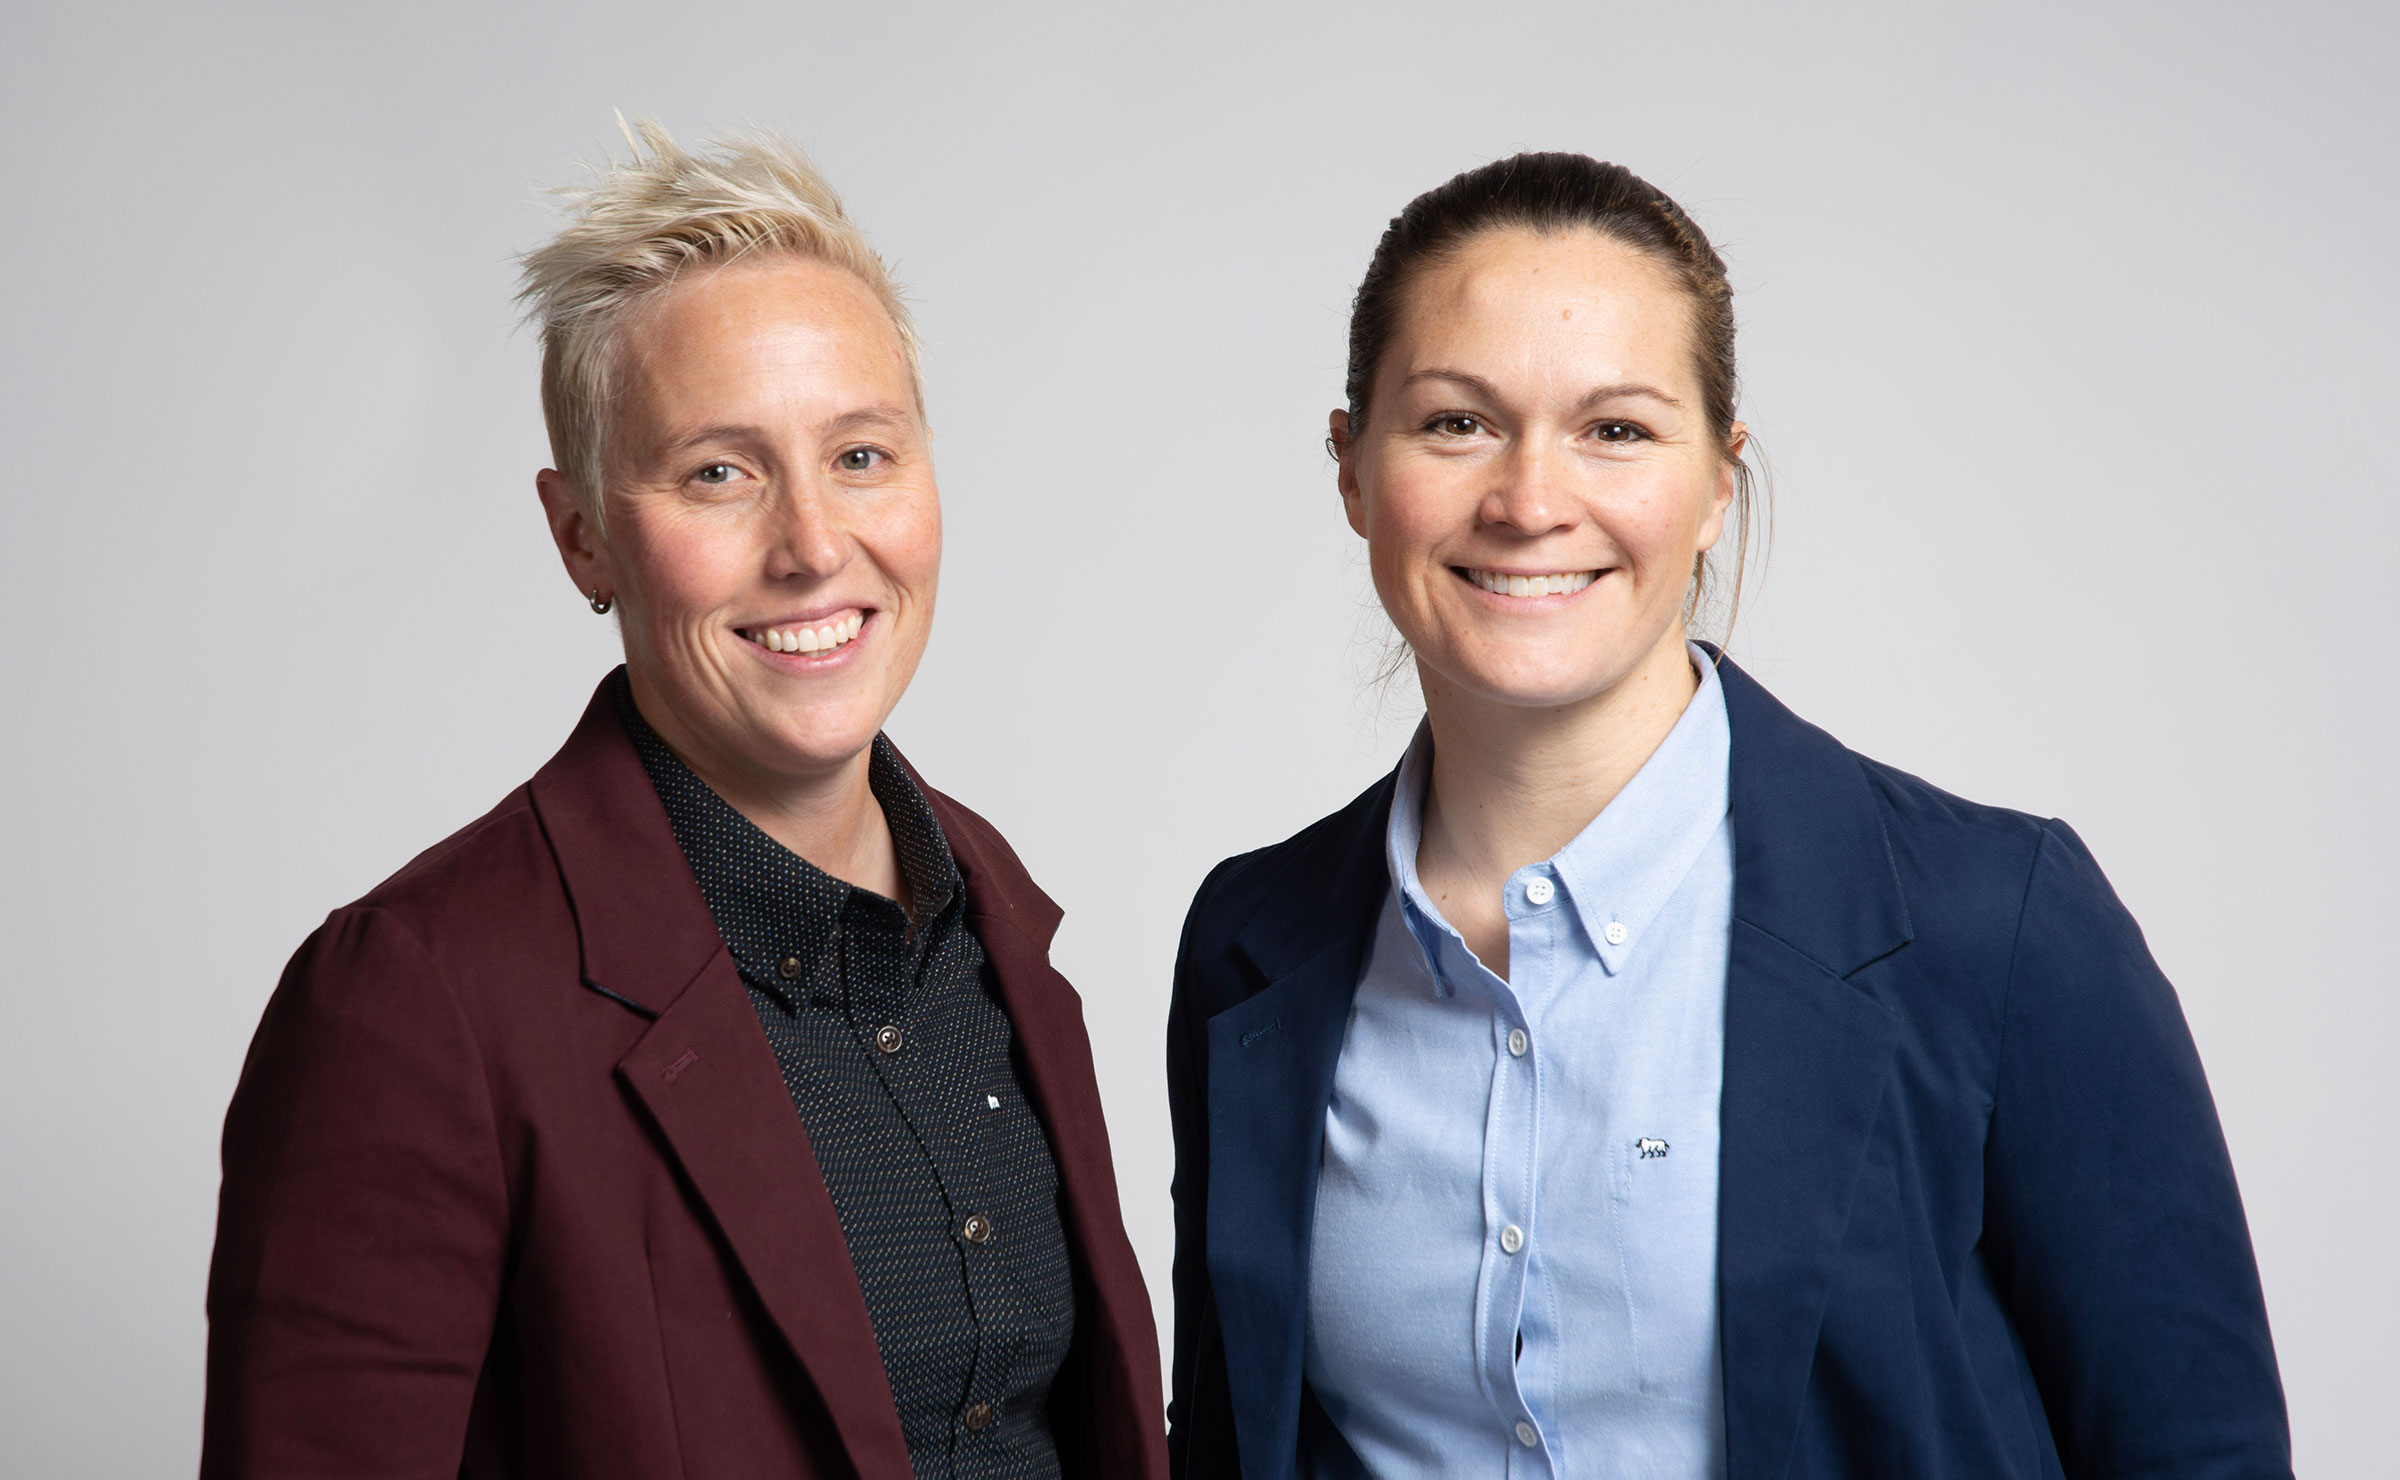 Rachel and Erin, the co-founders of the mindful project